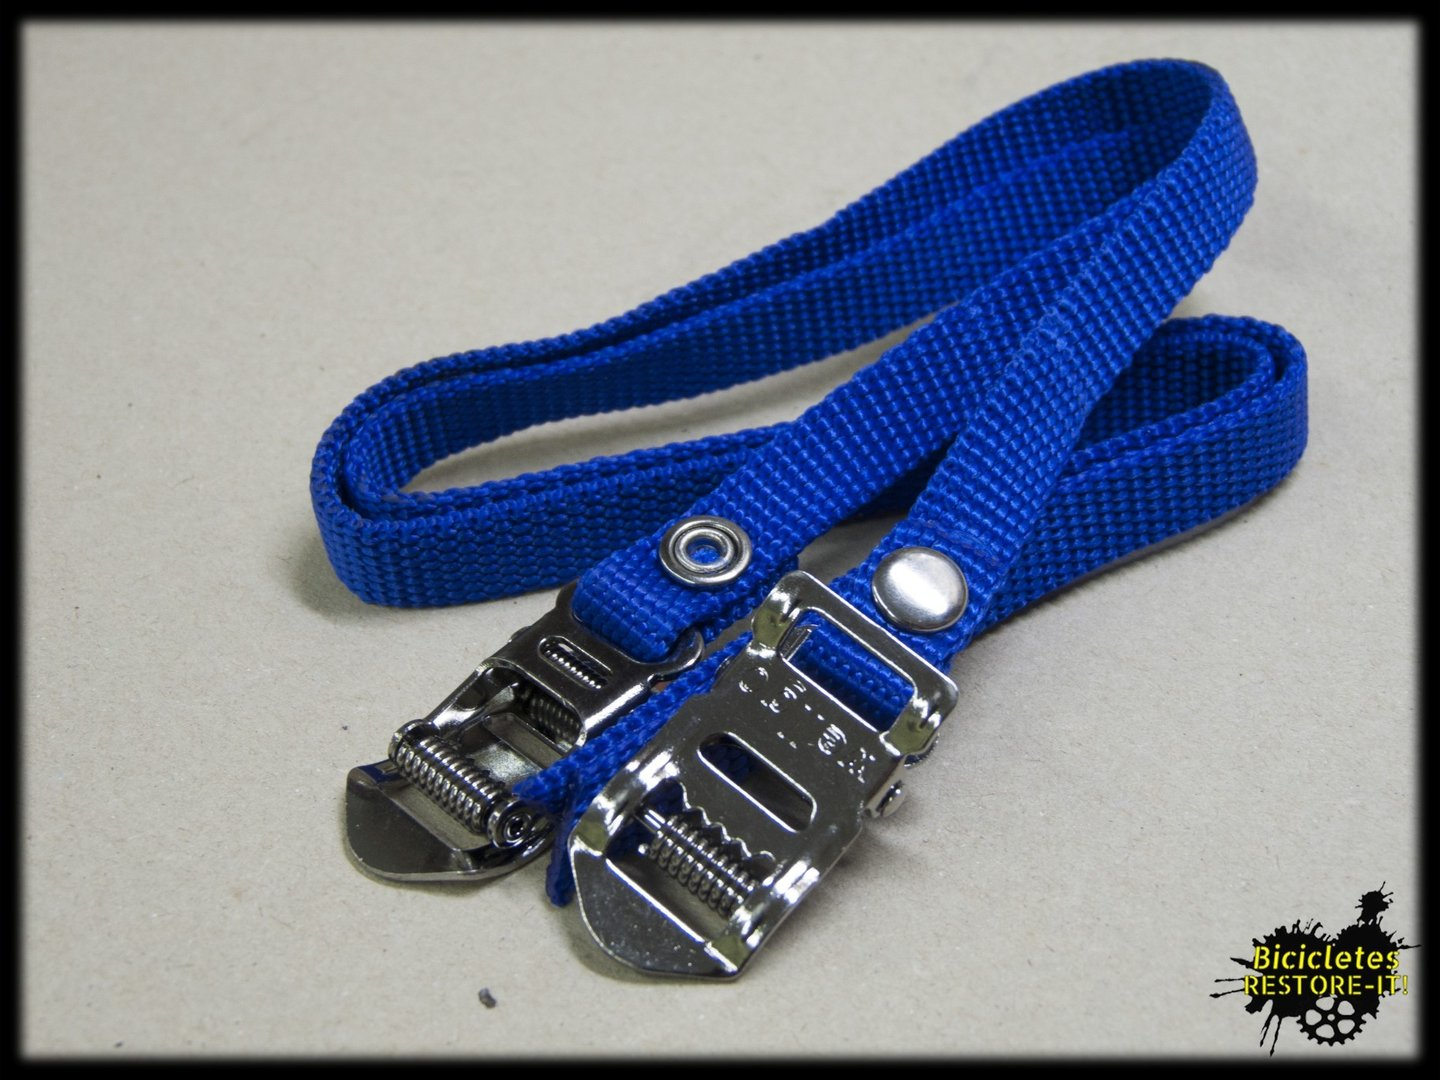 Correas calapies nylon azul